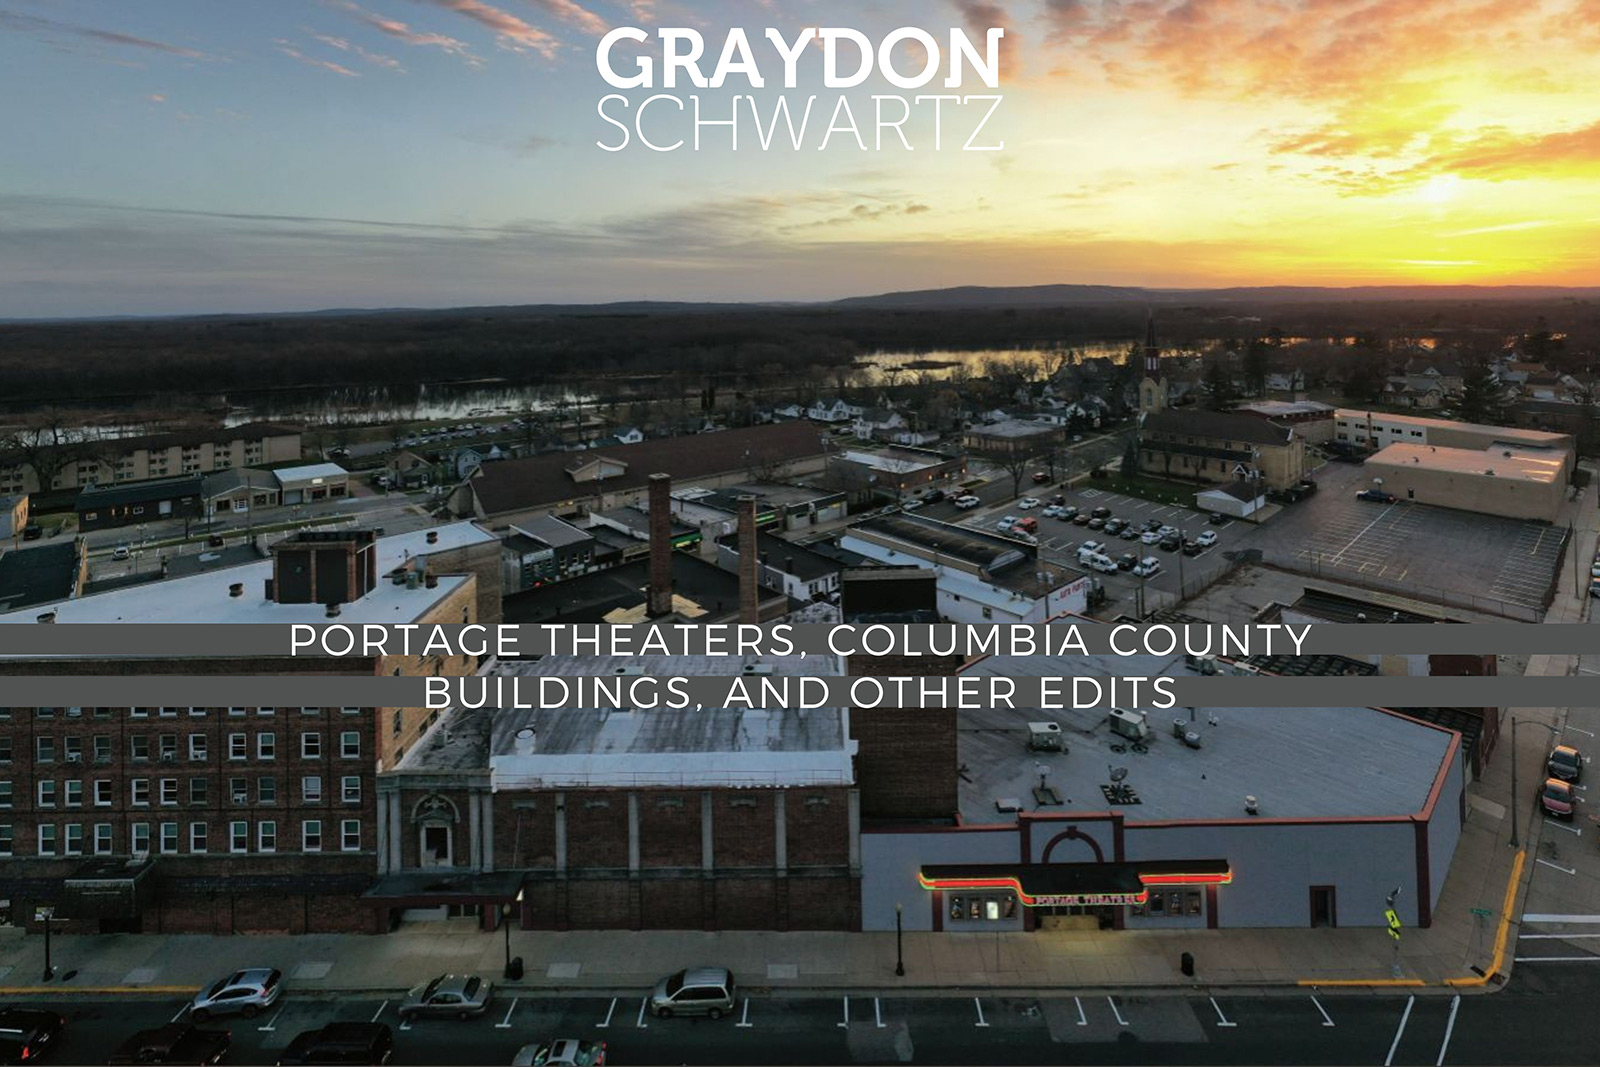 Portage Theaters, Columbia County Buildings, and Other Edits